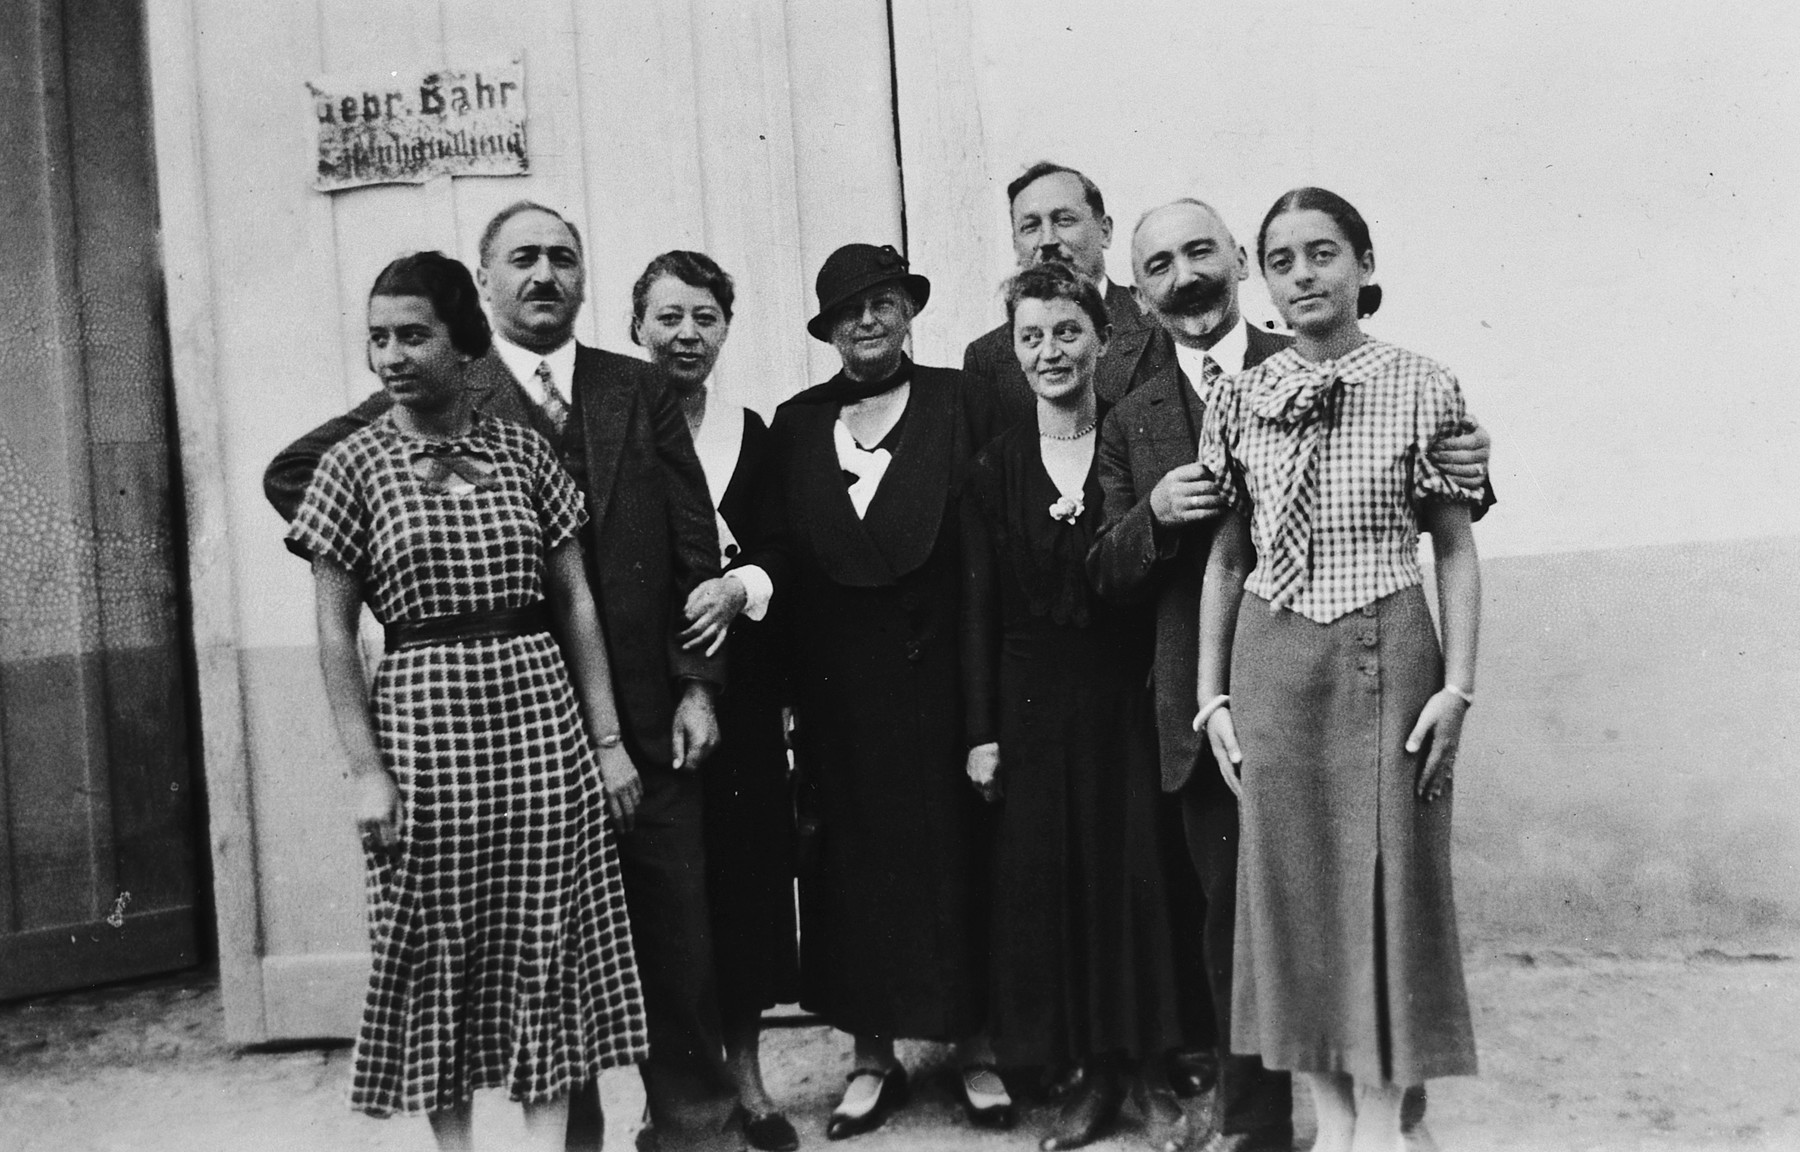 Group portrait of a large German-Jewish family in Breisach.  Pictured from left to right are Ruth Bähr, Julius Bähr, Natalie Bähr, and unknown couple, Fanny Bähr, Hermann Bähr and Margot Bähr.  The sign on he door reads Gebrueder Bähr  Eisenhandlung (Bähr Brothers Plumbing Supply).